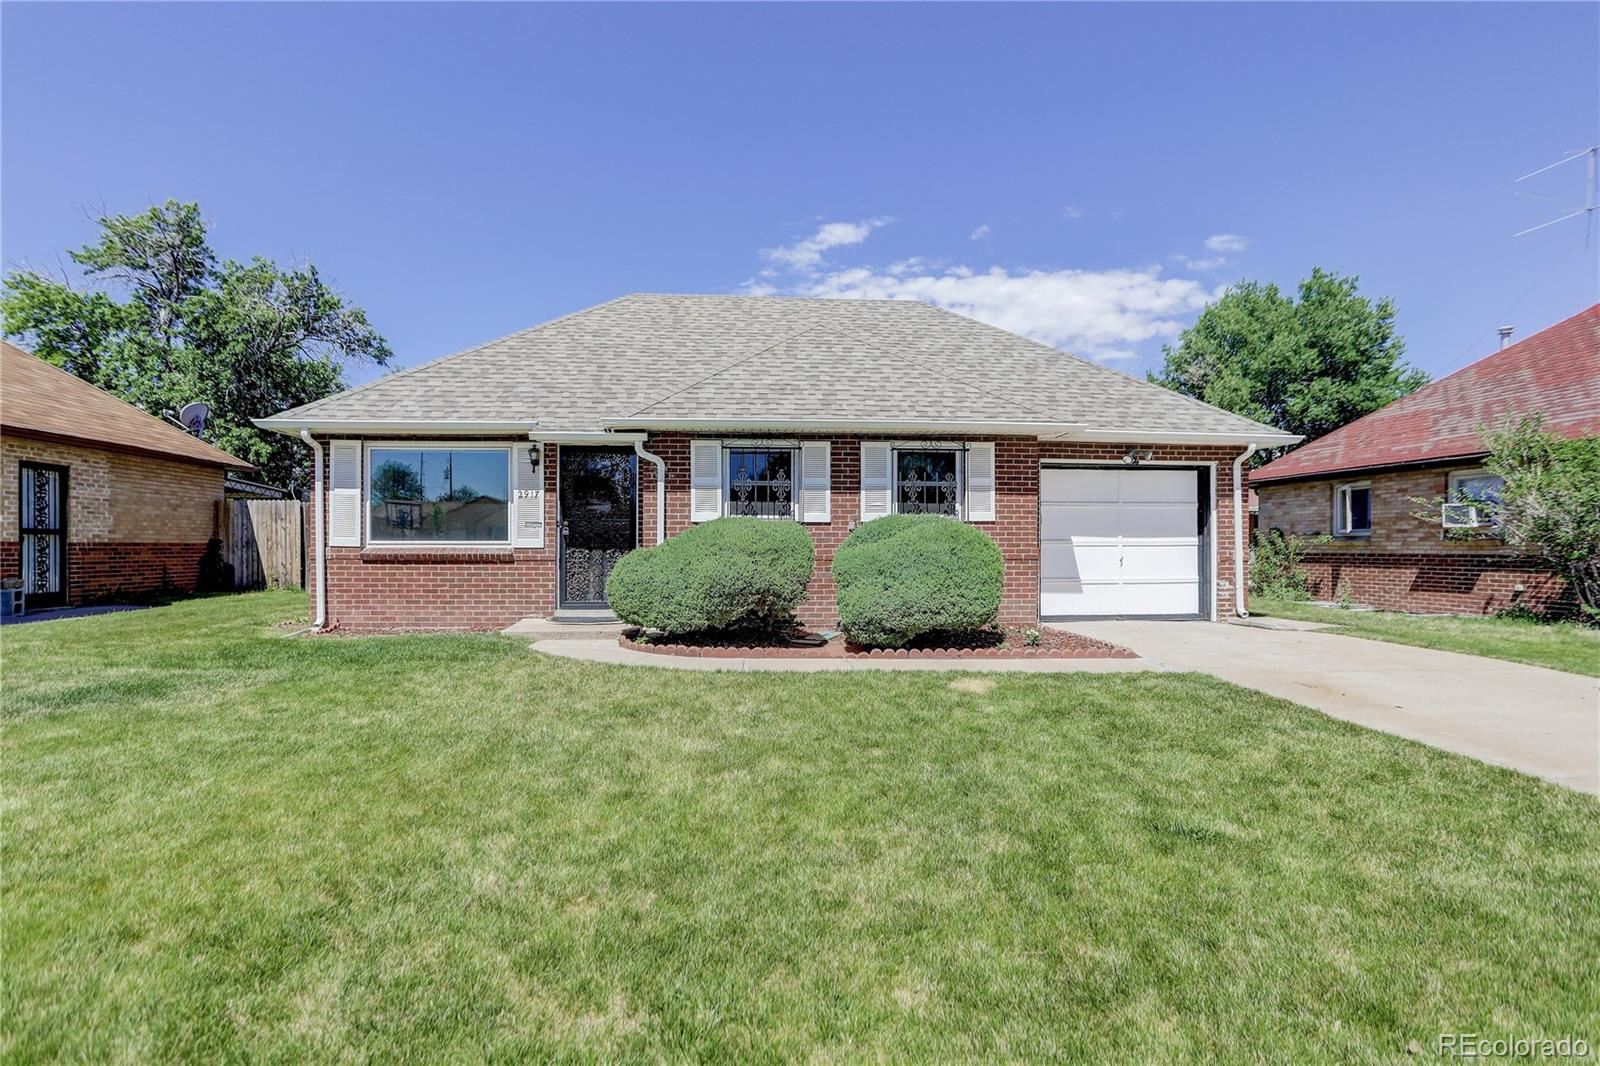 2917 Grape Street, Denver, CO 80207 - #: 4971132